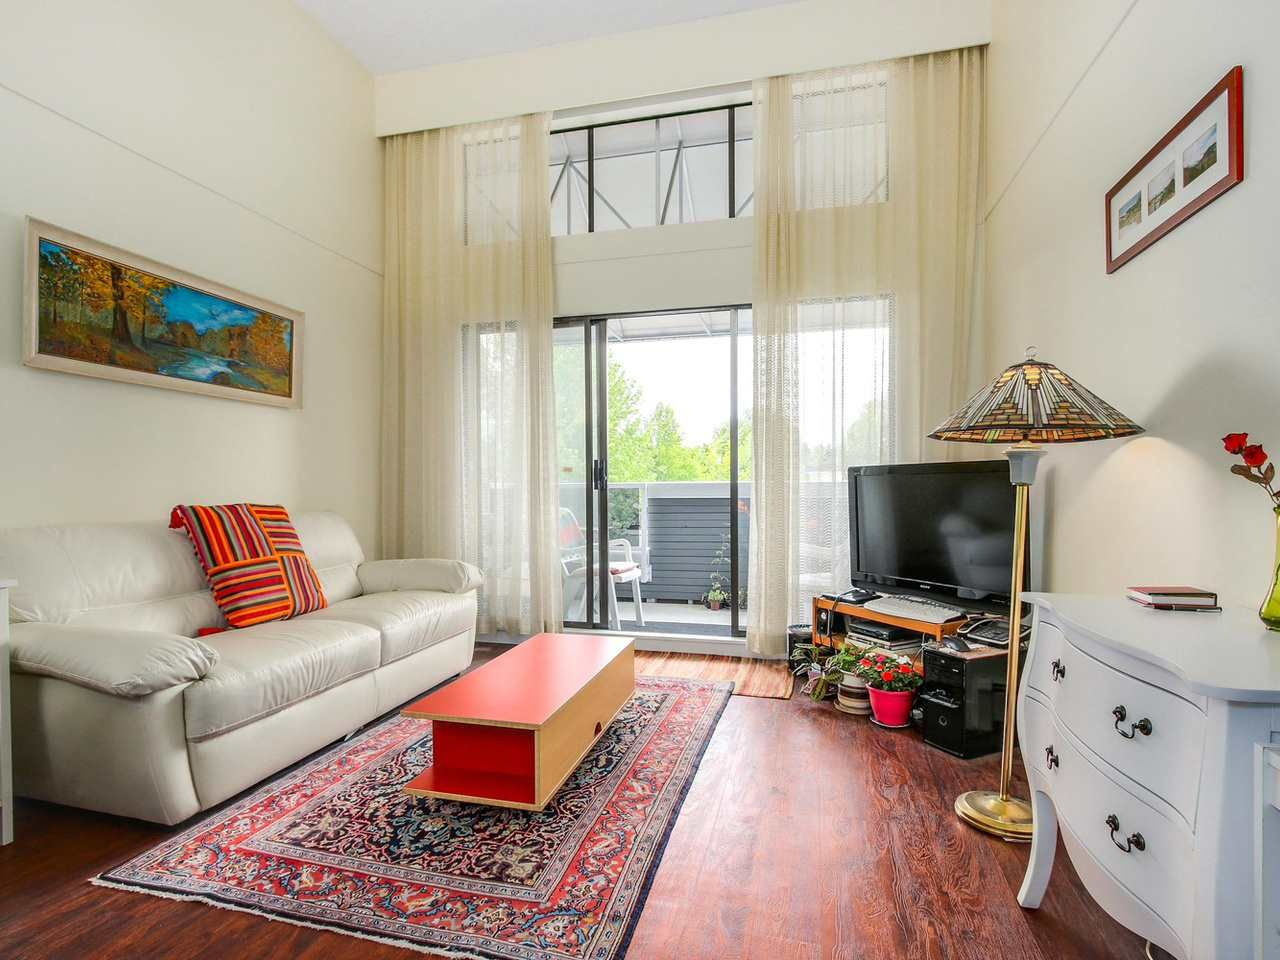 Main Photo: P4 2885 SPRUCE STREET in : Fairview VW Condo for sale (Vancouver West)  : MLS®# R2090215